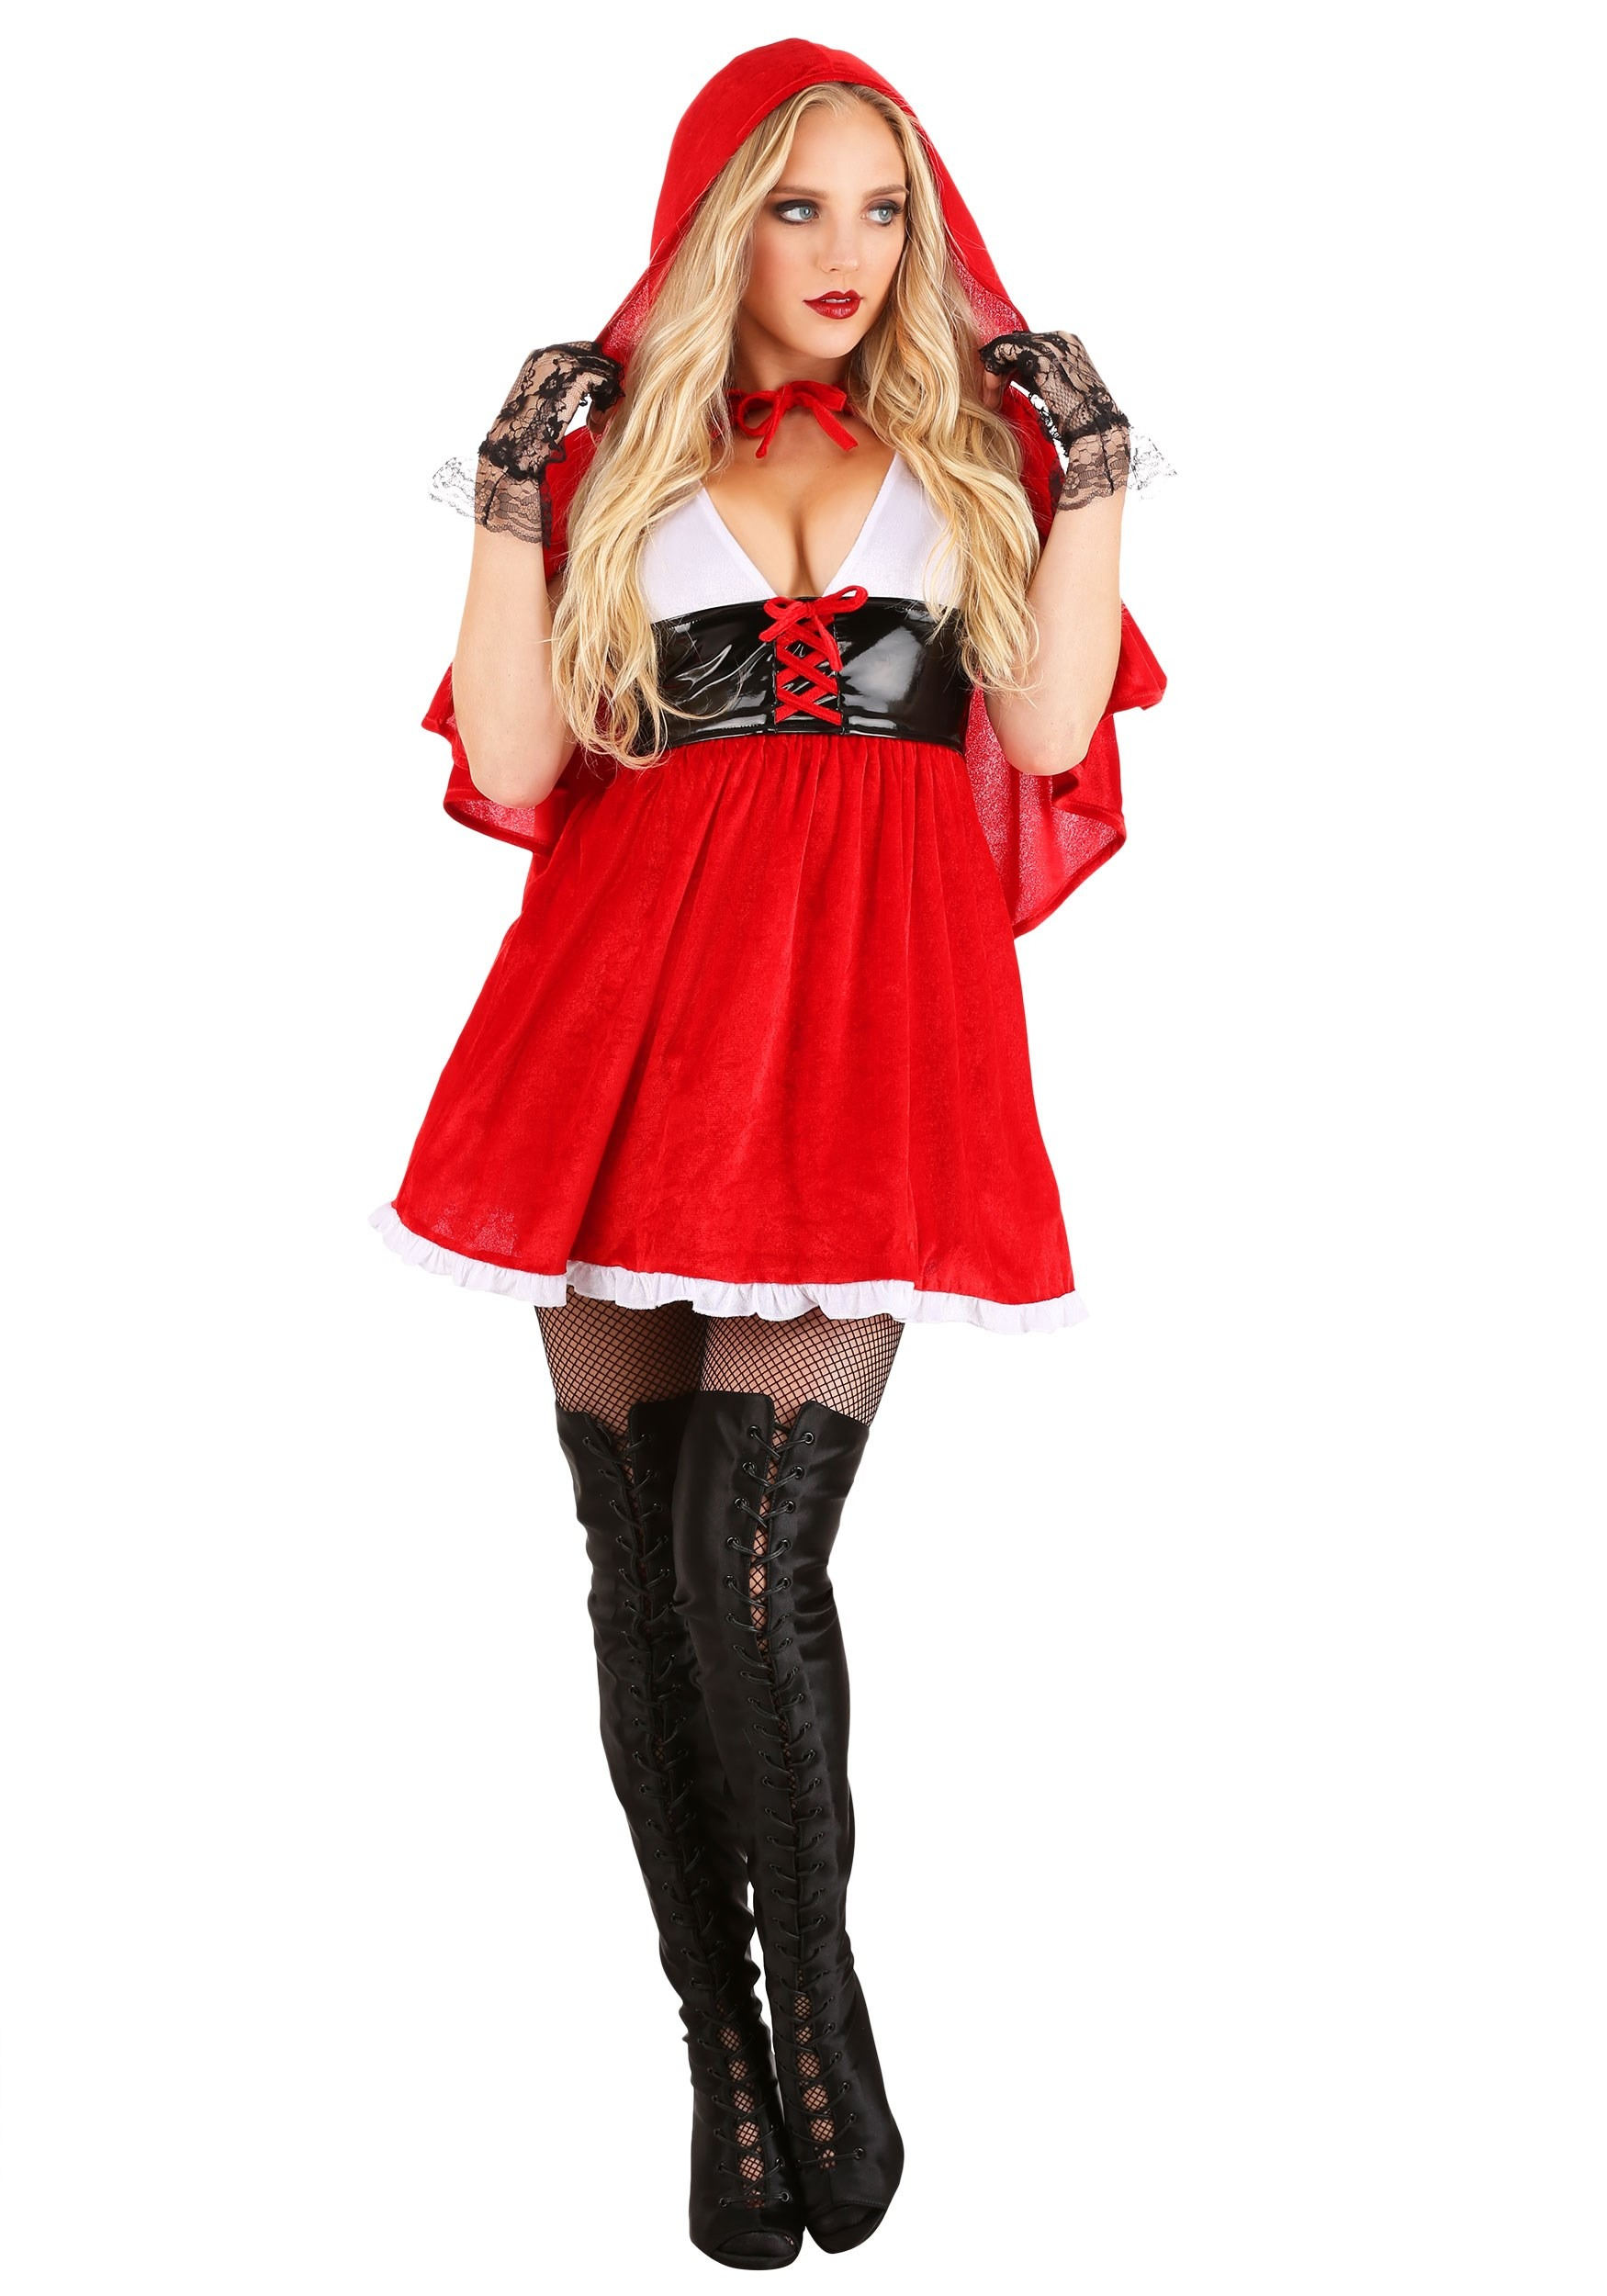 Red Hot Riding Hood Women's Costume